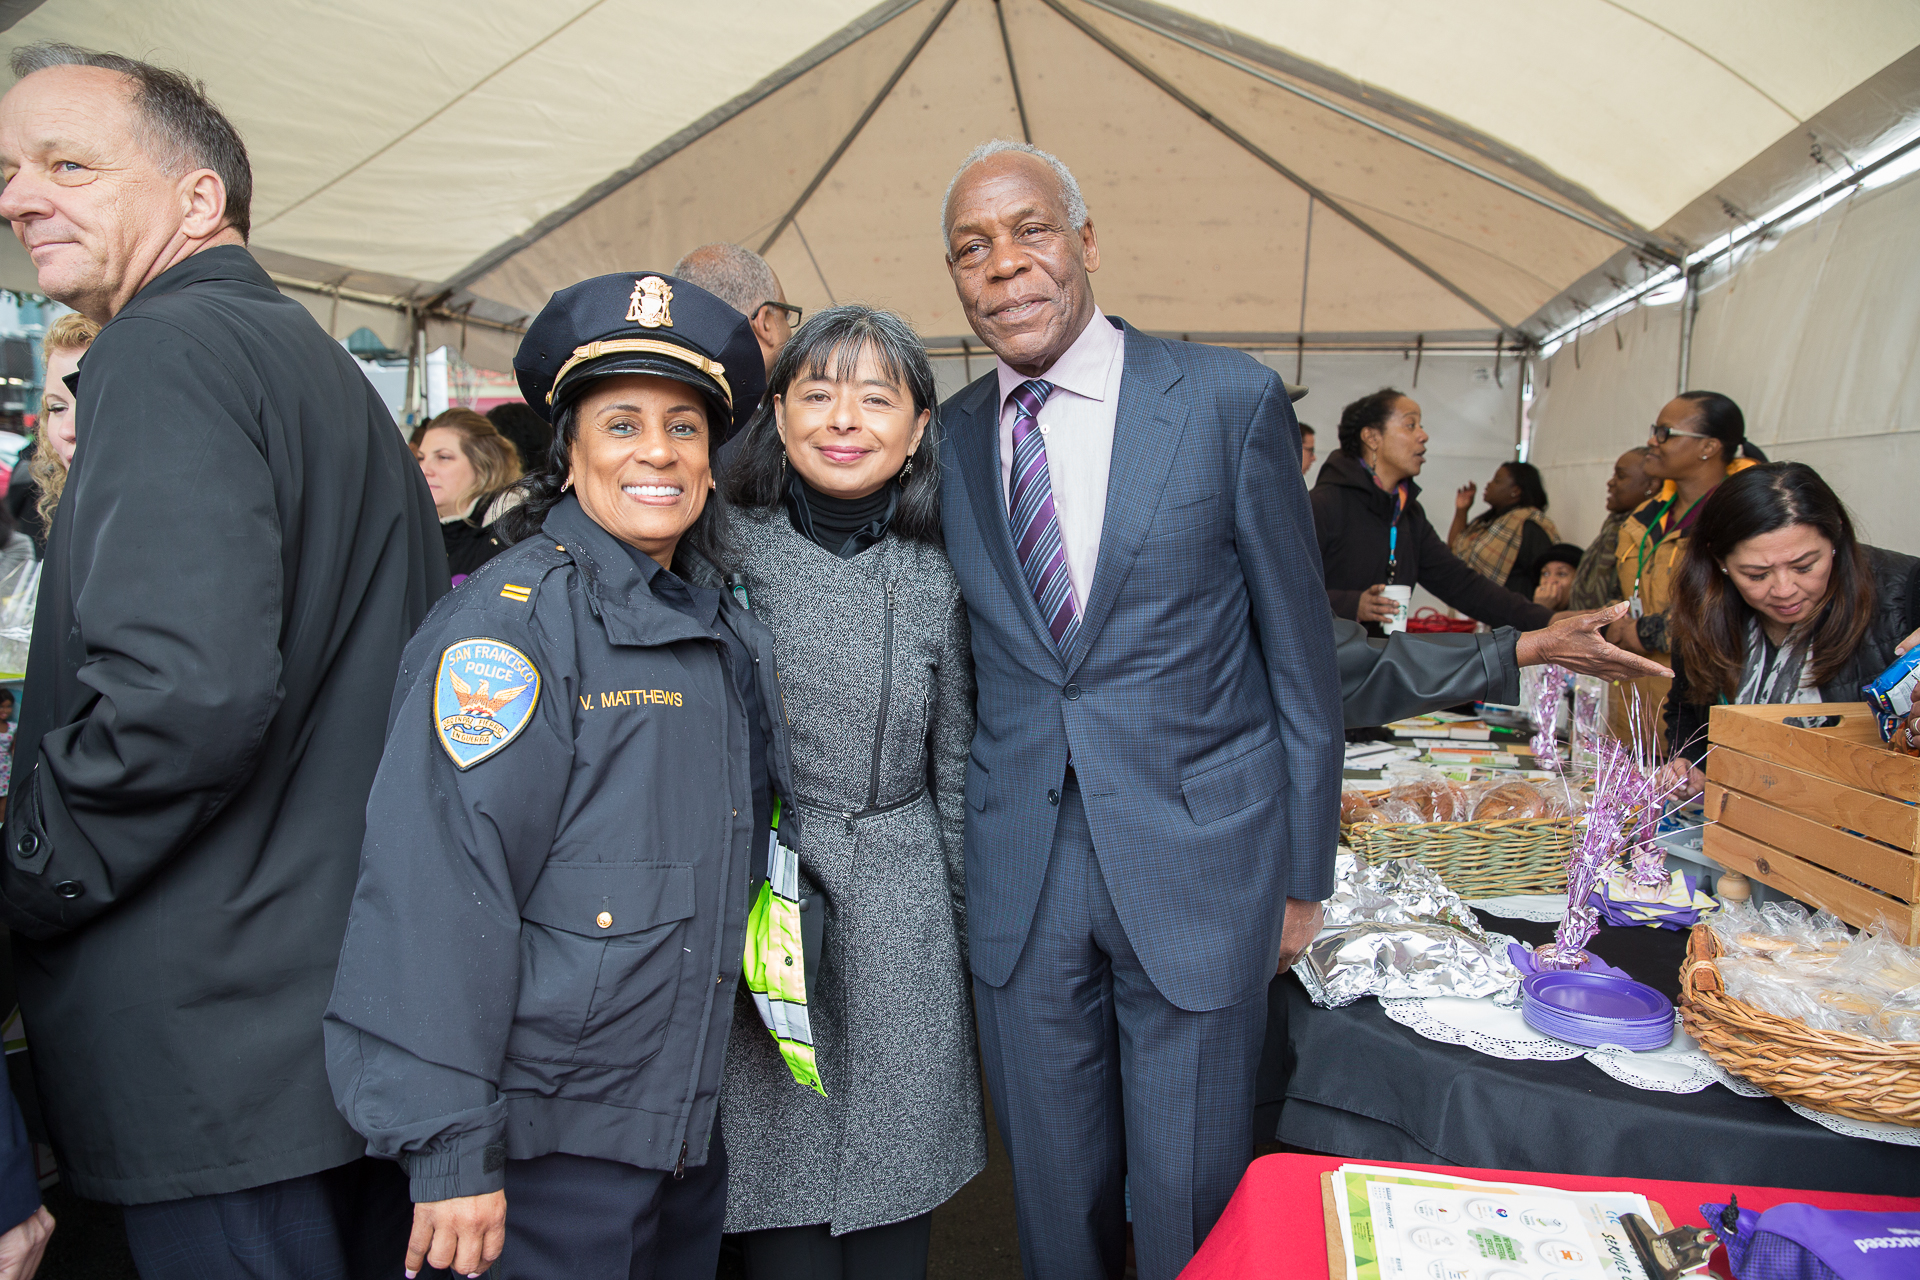 San Francisco's finest joined in the festivities with Jilma Meneses and Danny Glover.